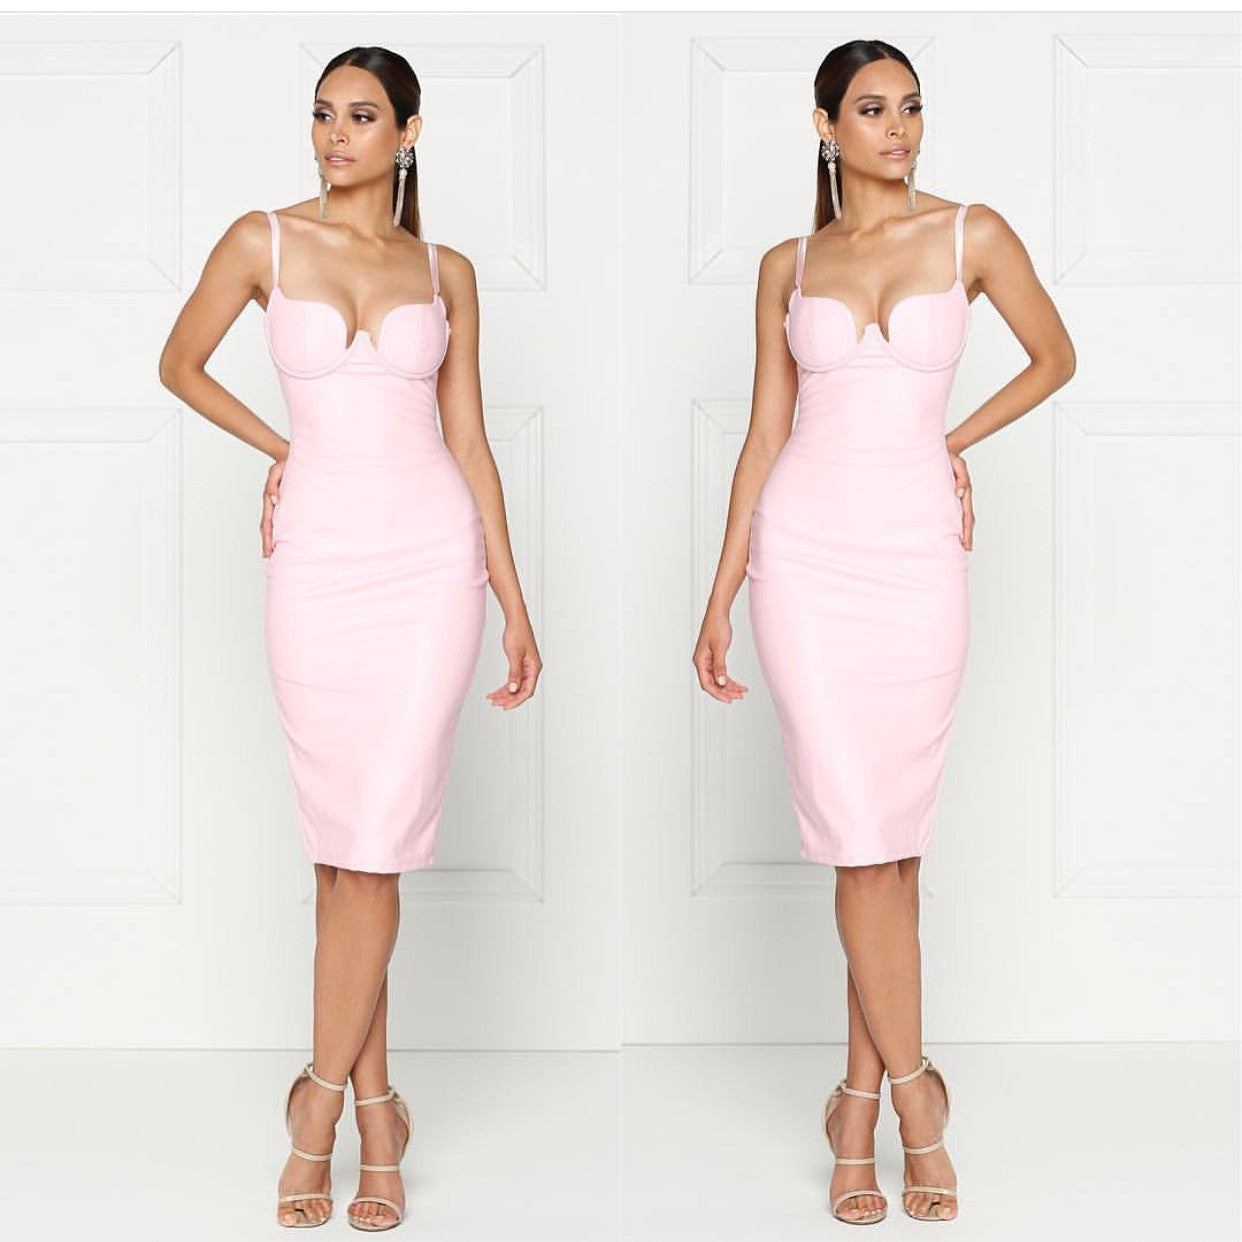 Kim pink LEATHERETTE - Yolaboutique